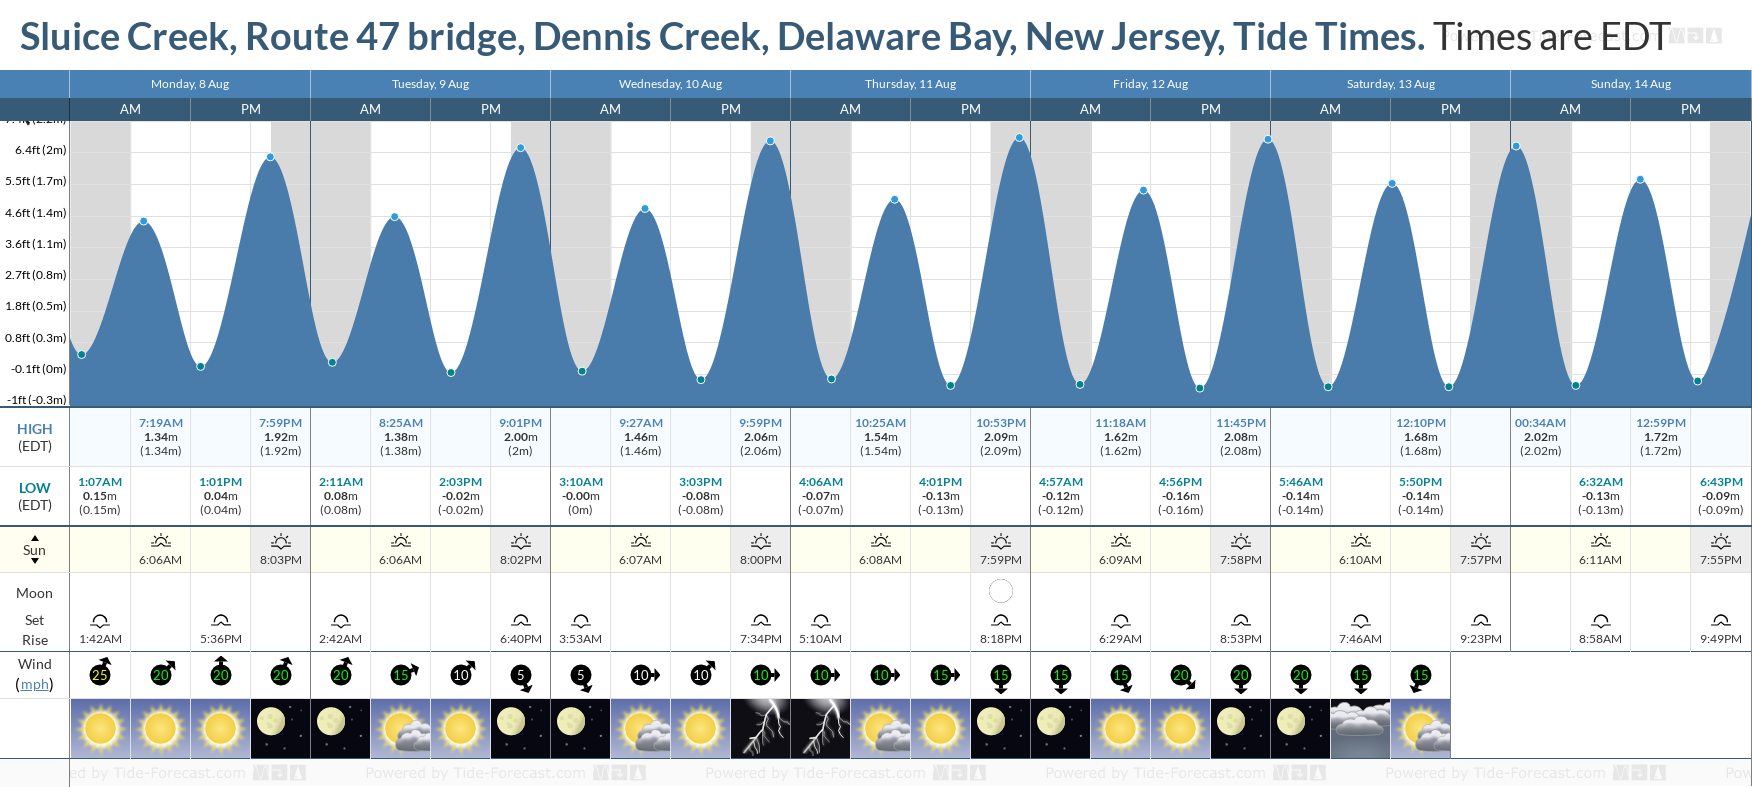 Sluice Creek, Route 47 bridge, Dennis Creek, Delaware Bay, New Jersey Tide Chart including high and low tide tide times for the next 7 days